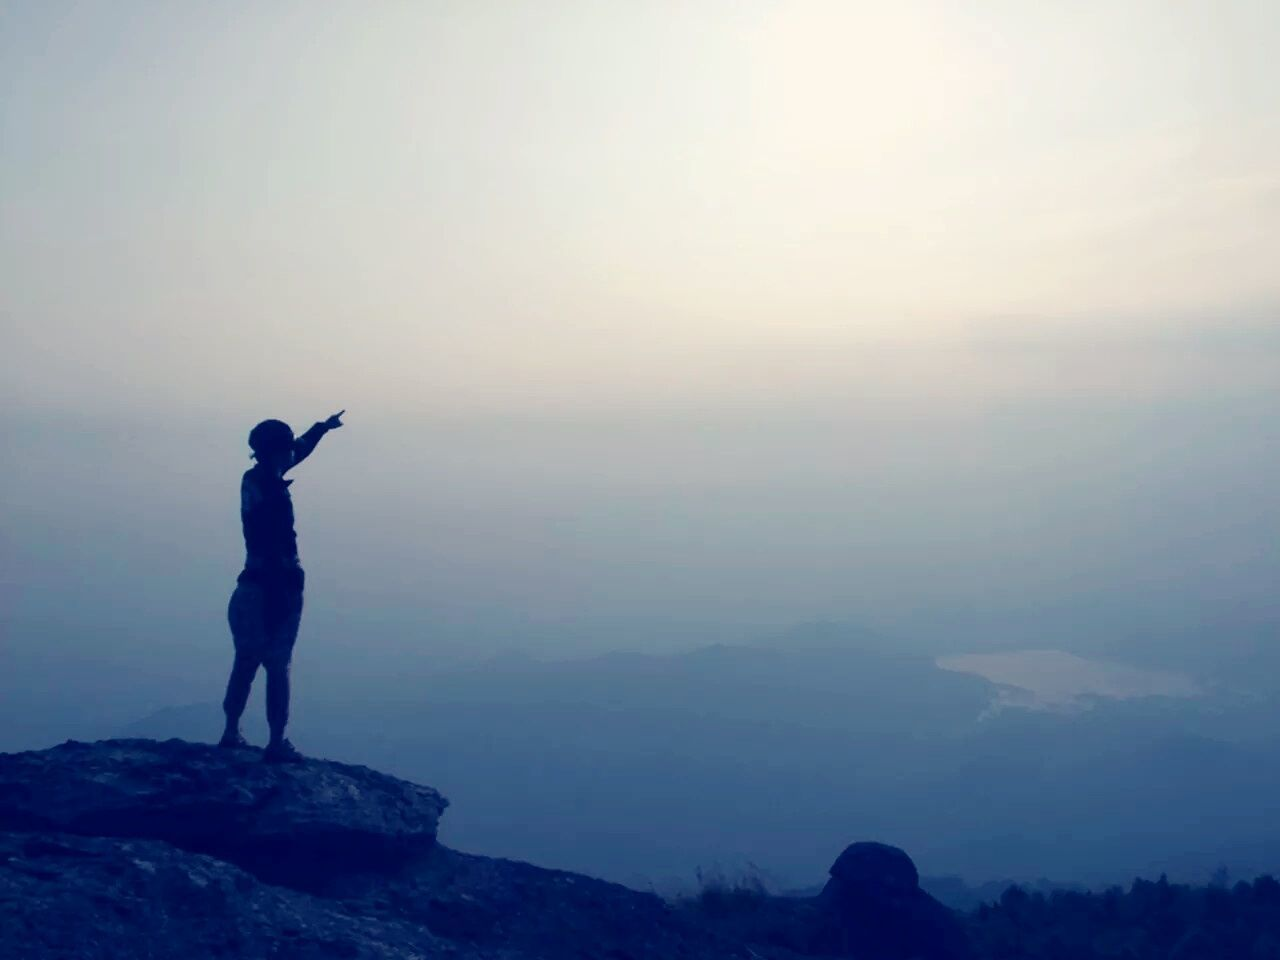 Full Length Of Person Pointing In Sky While Standing On Mountain